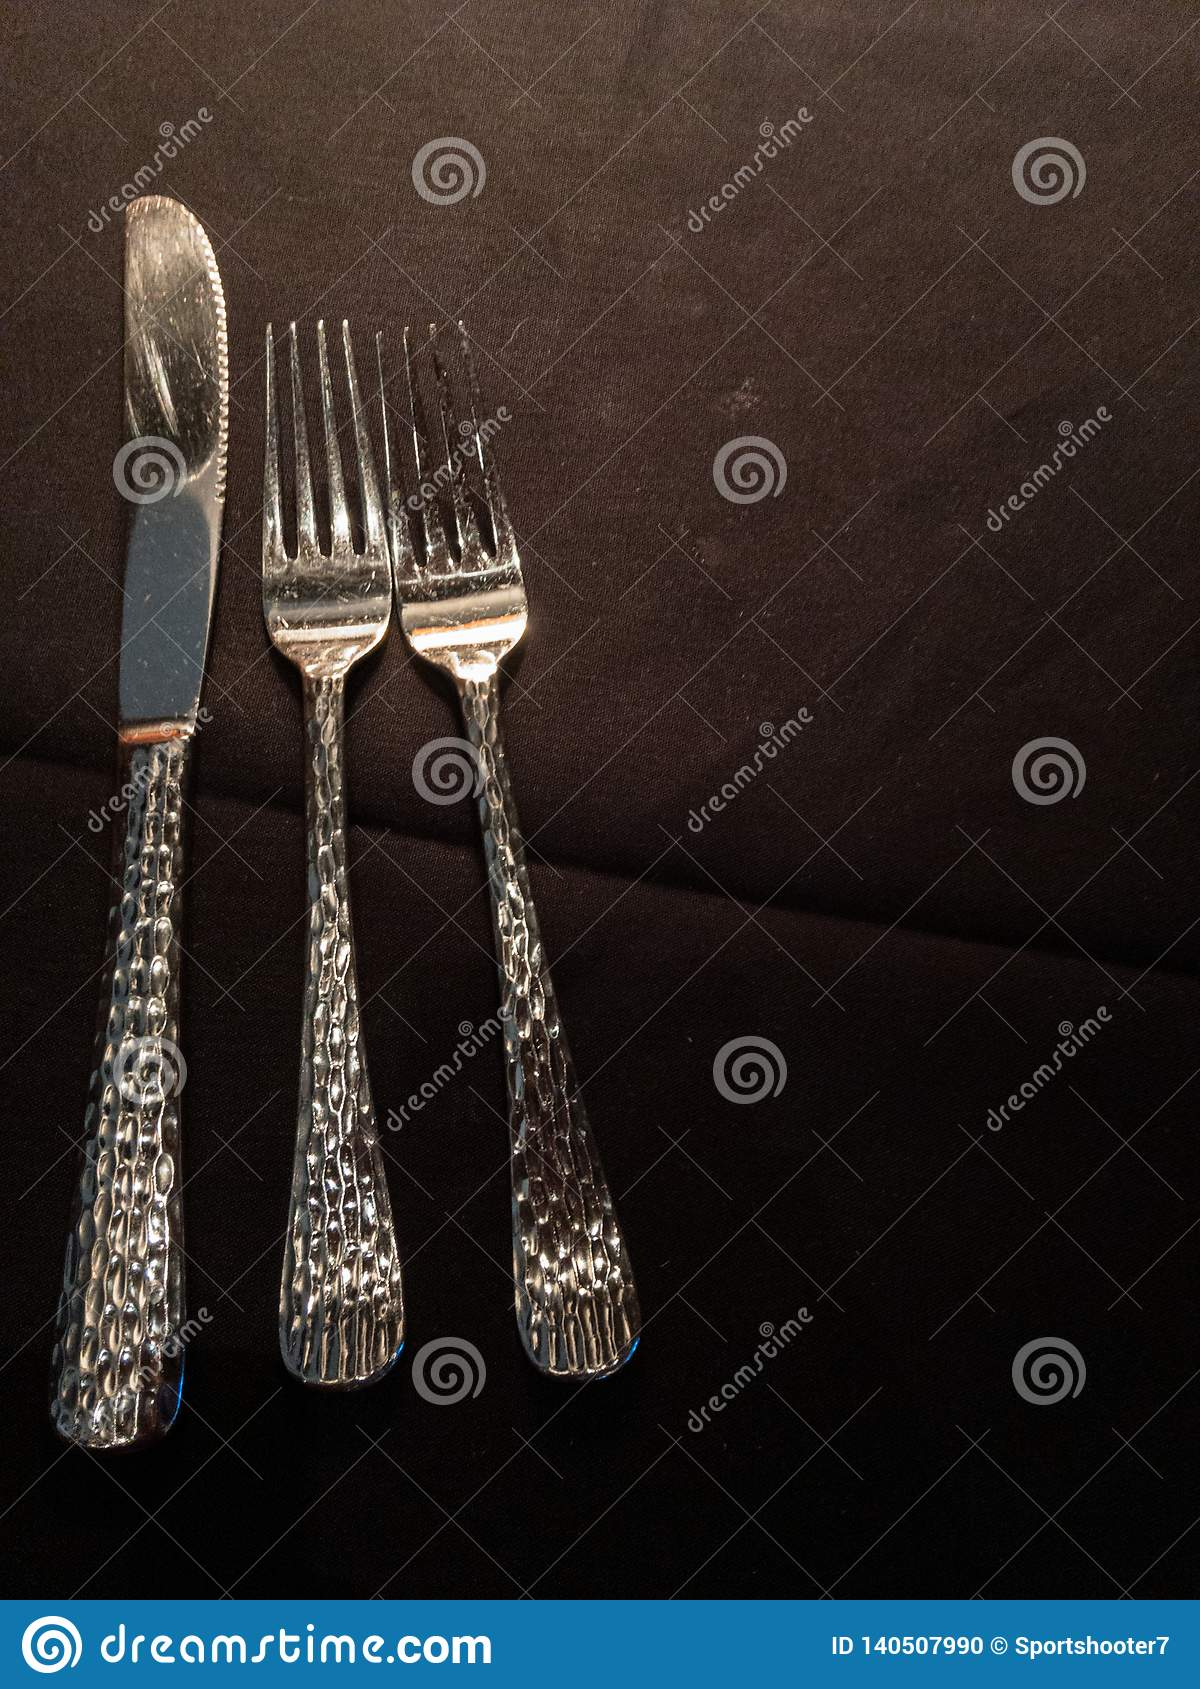 Silverware placement against black background.